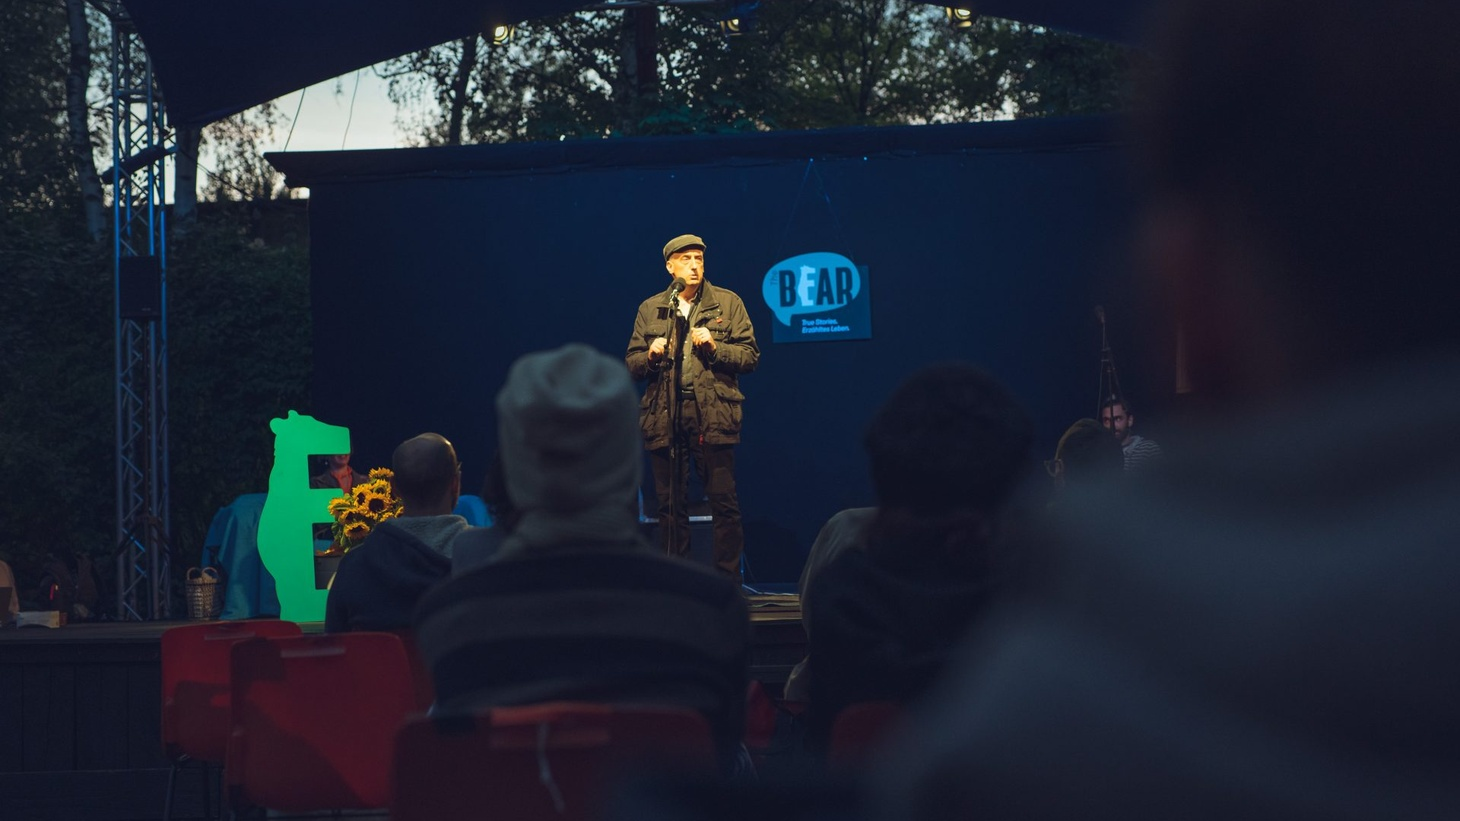 These true, personal stories were recorded live at The Bear on September 18 at the Shakespeare Company's open-air stage in Berlin.